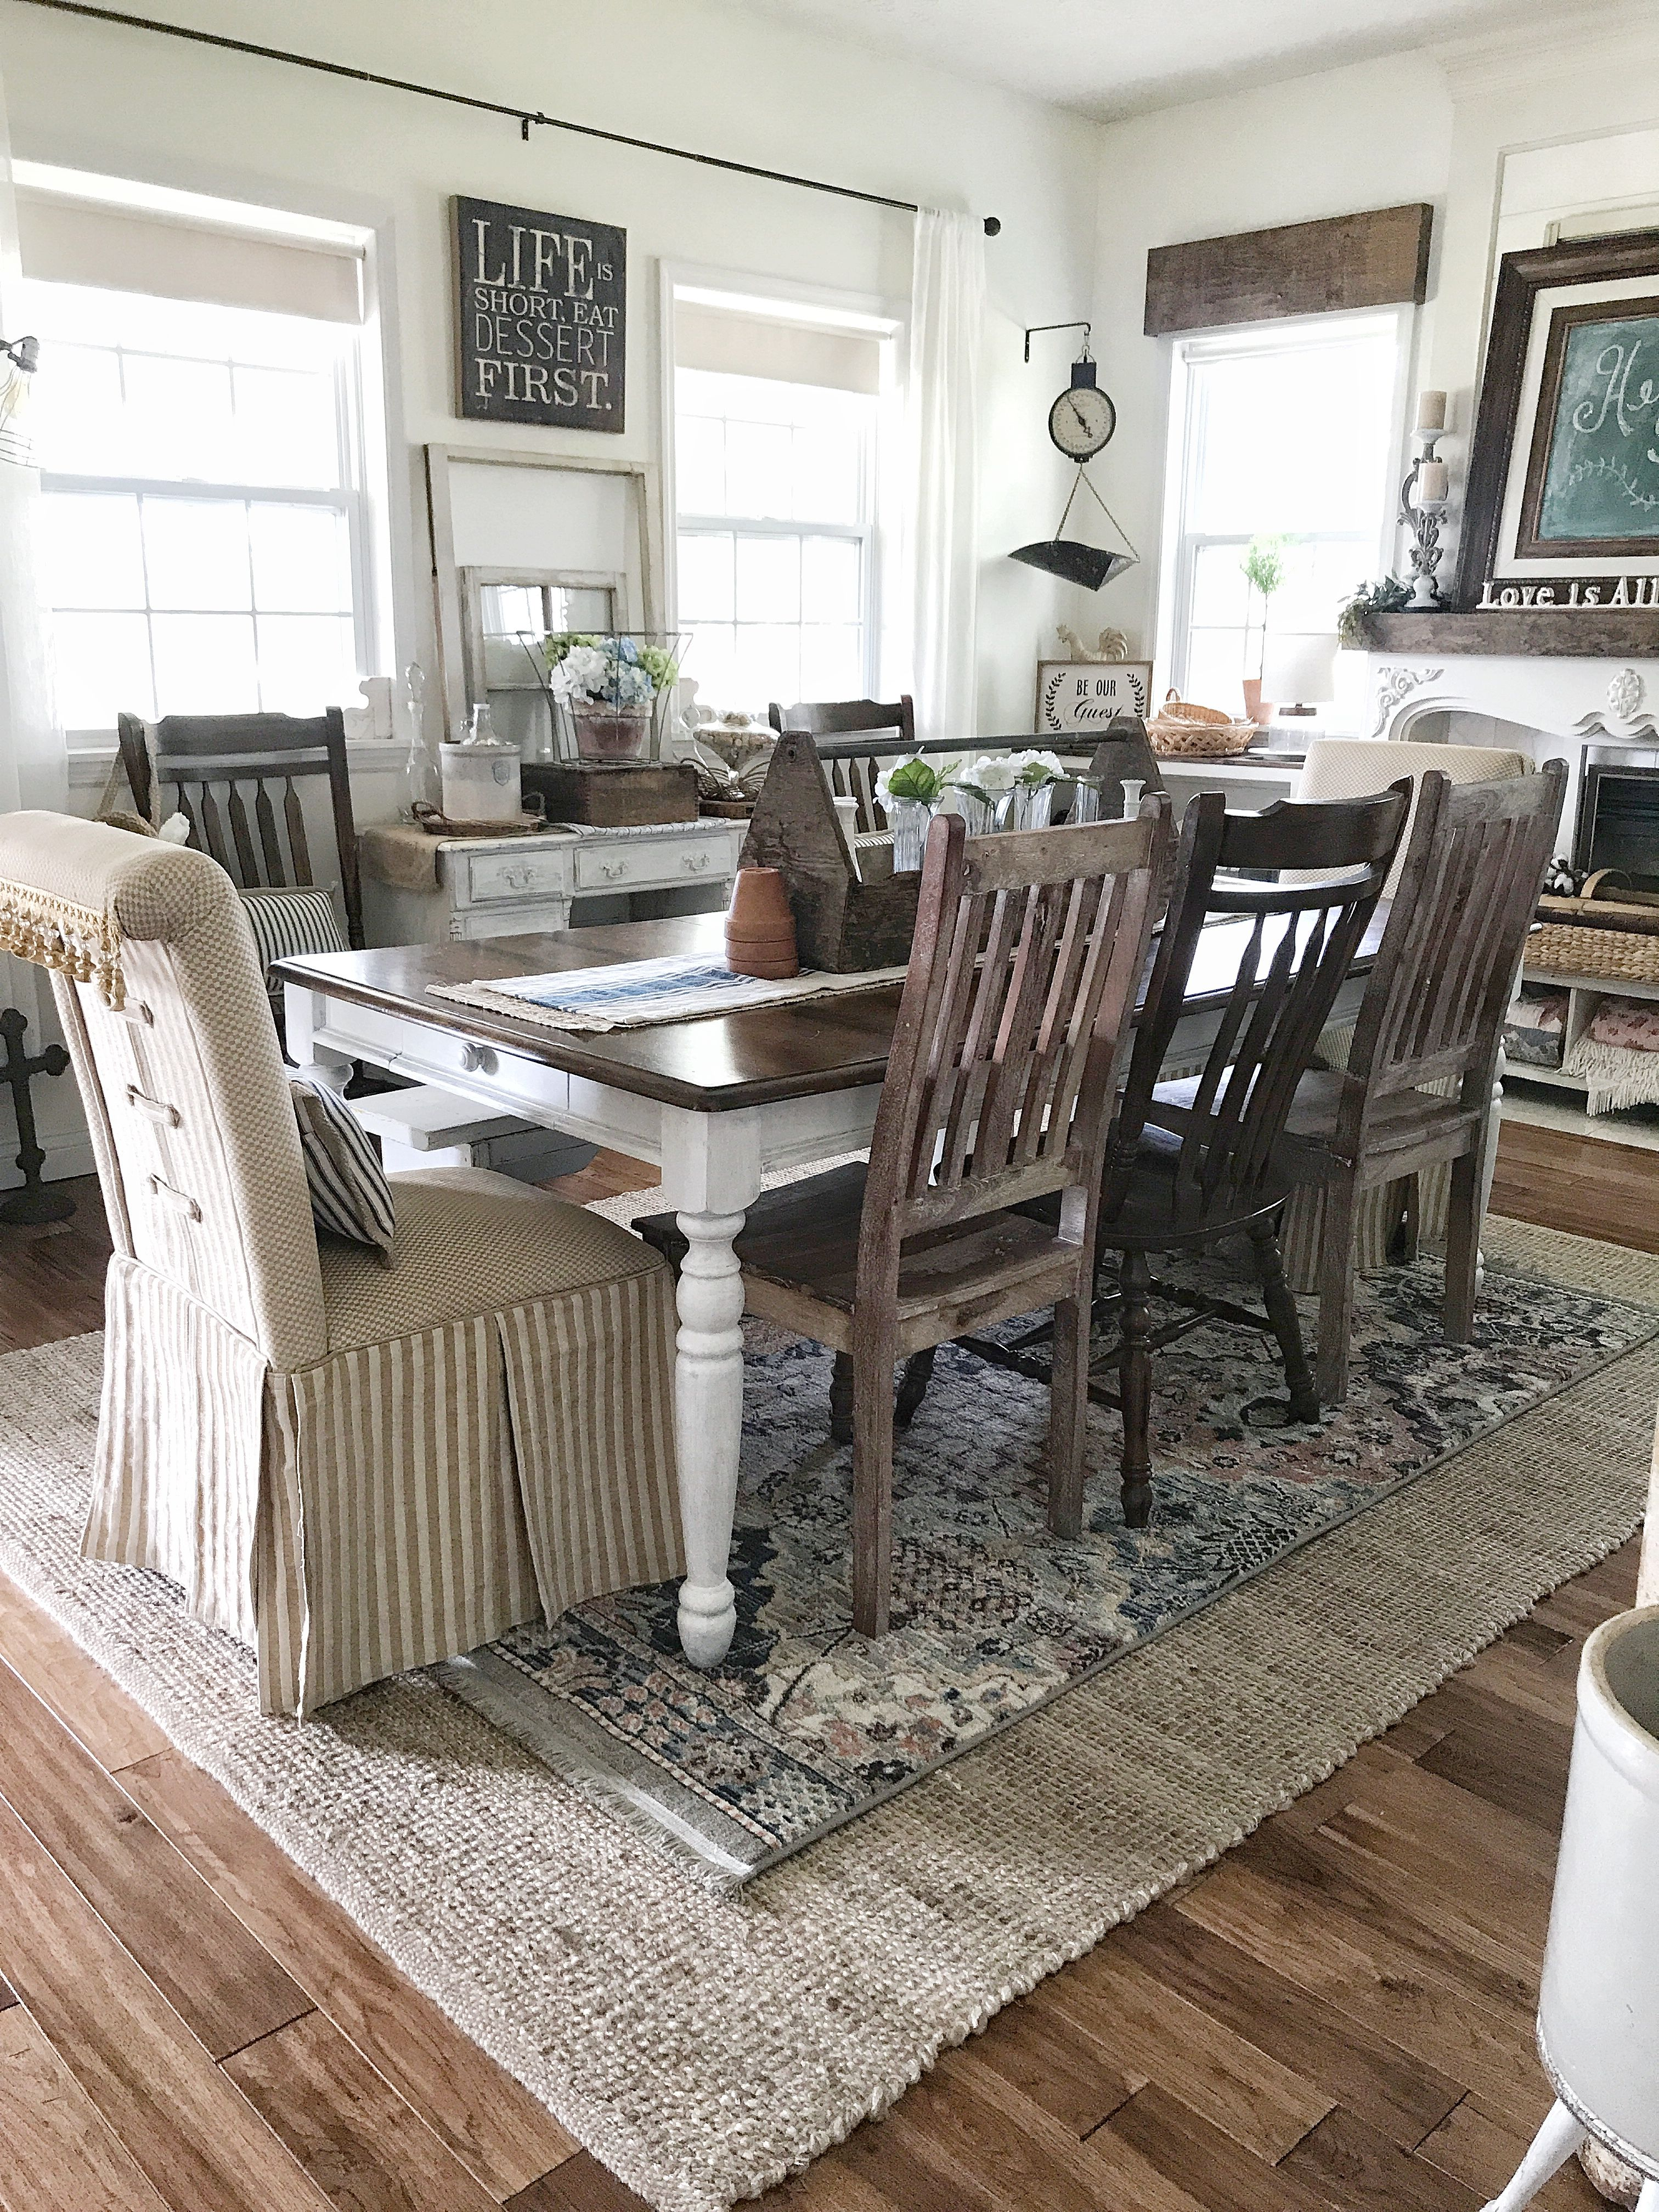 Farmhouse Style Dining Room Decor Layered Rugs And Vintage Finds